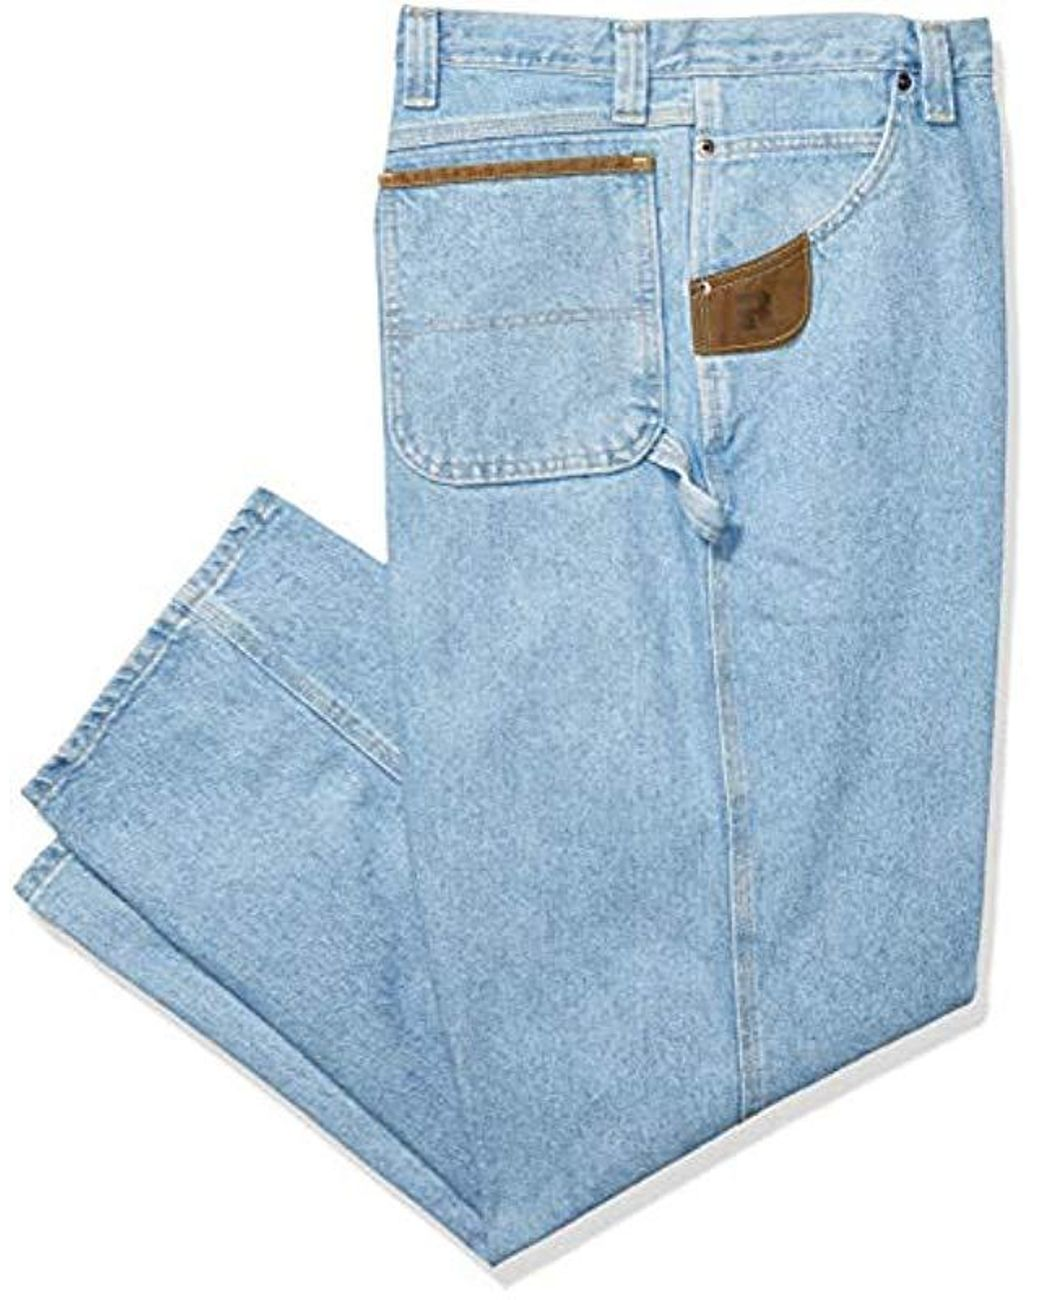 0439f99f Wrangler RIGGS Workwear Big & Tall Carpenter Jean in Blue for Men - Save  18% - Lyst